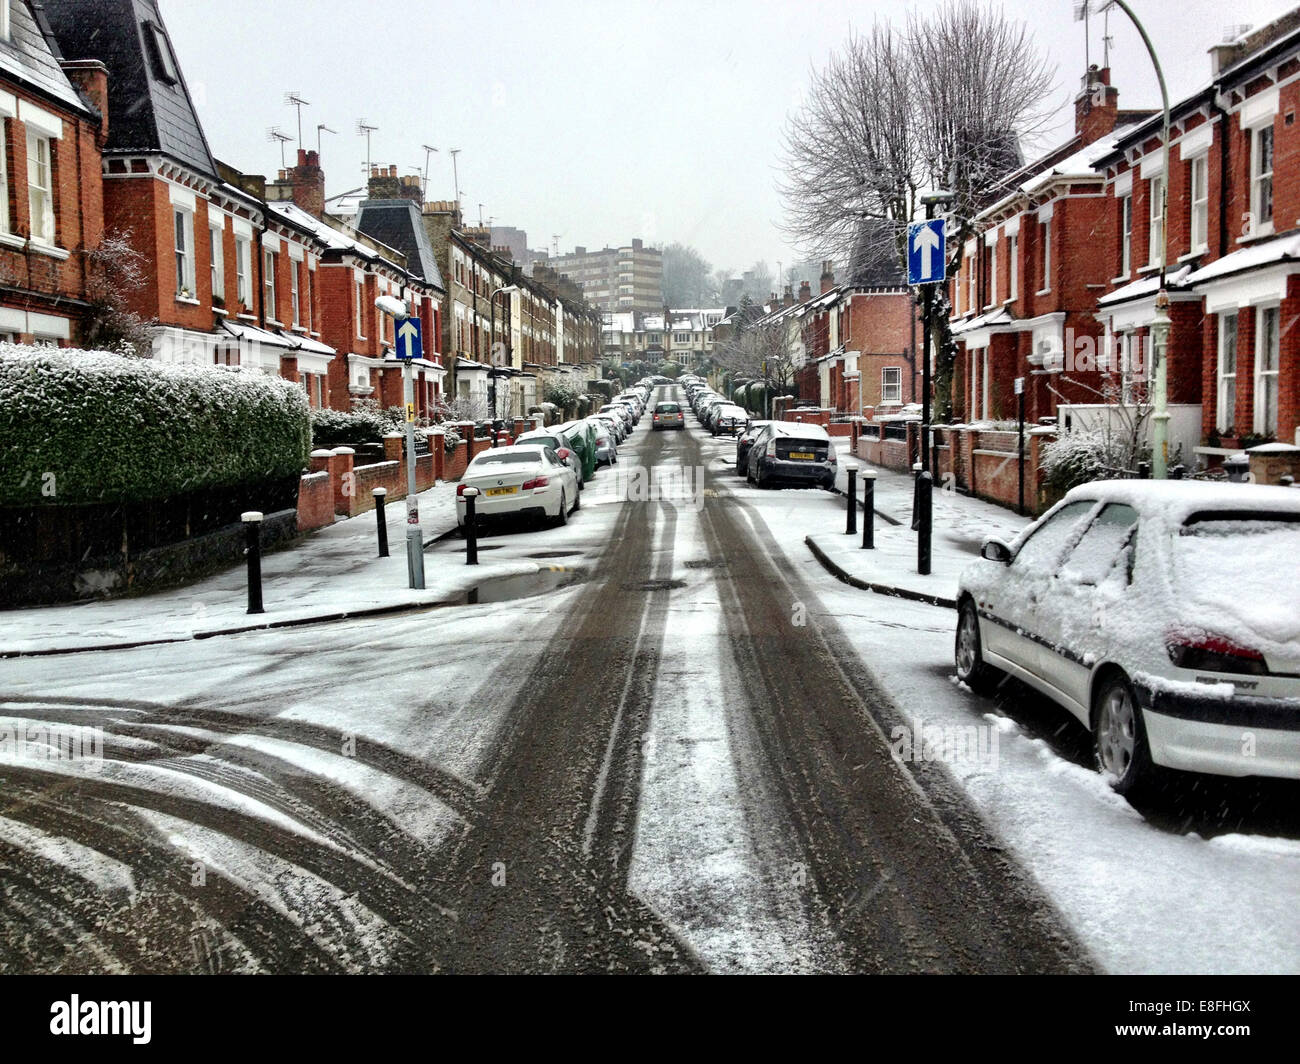 UK, London, London Borough of Haringey, Highgate Village, Urban street covered in snow Stock Photo